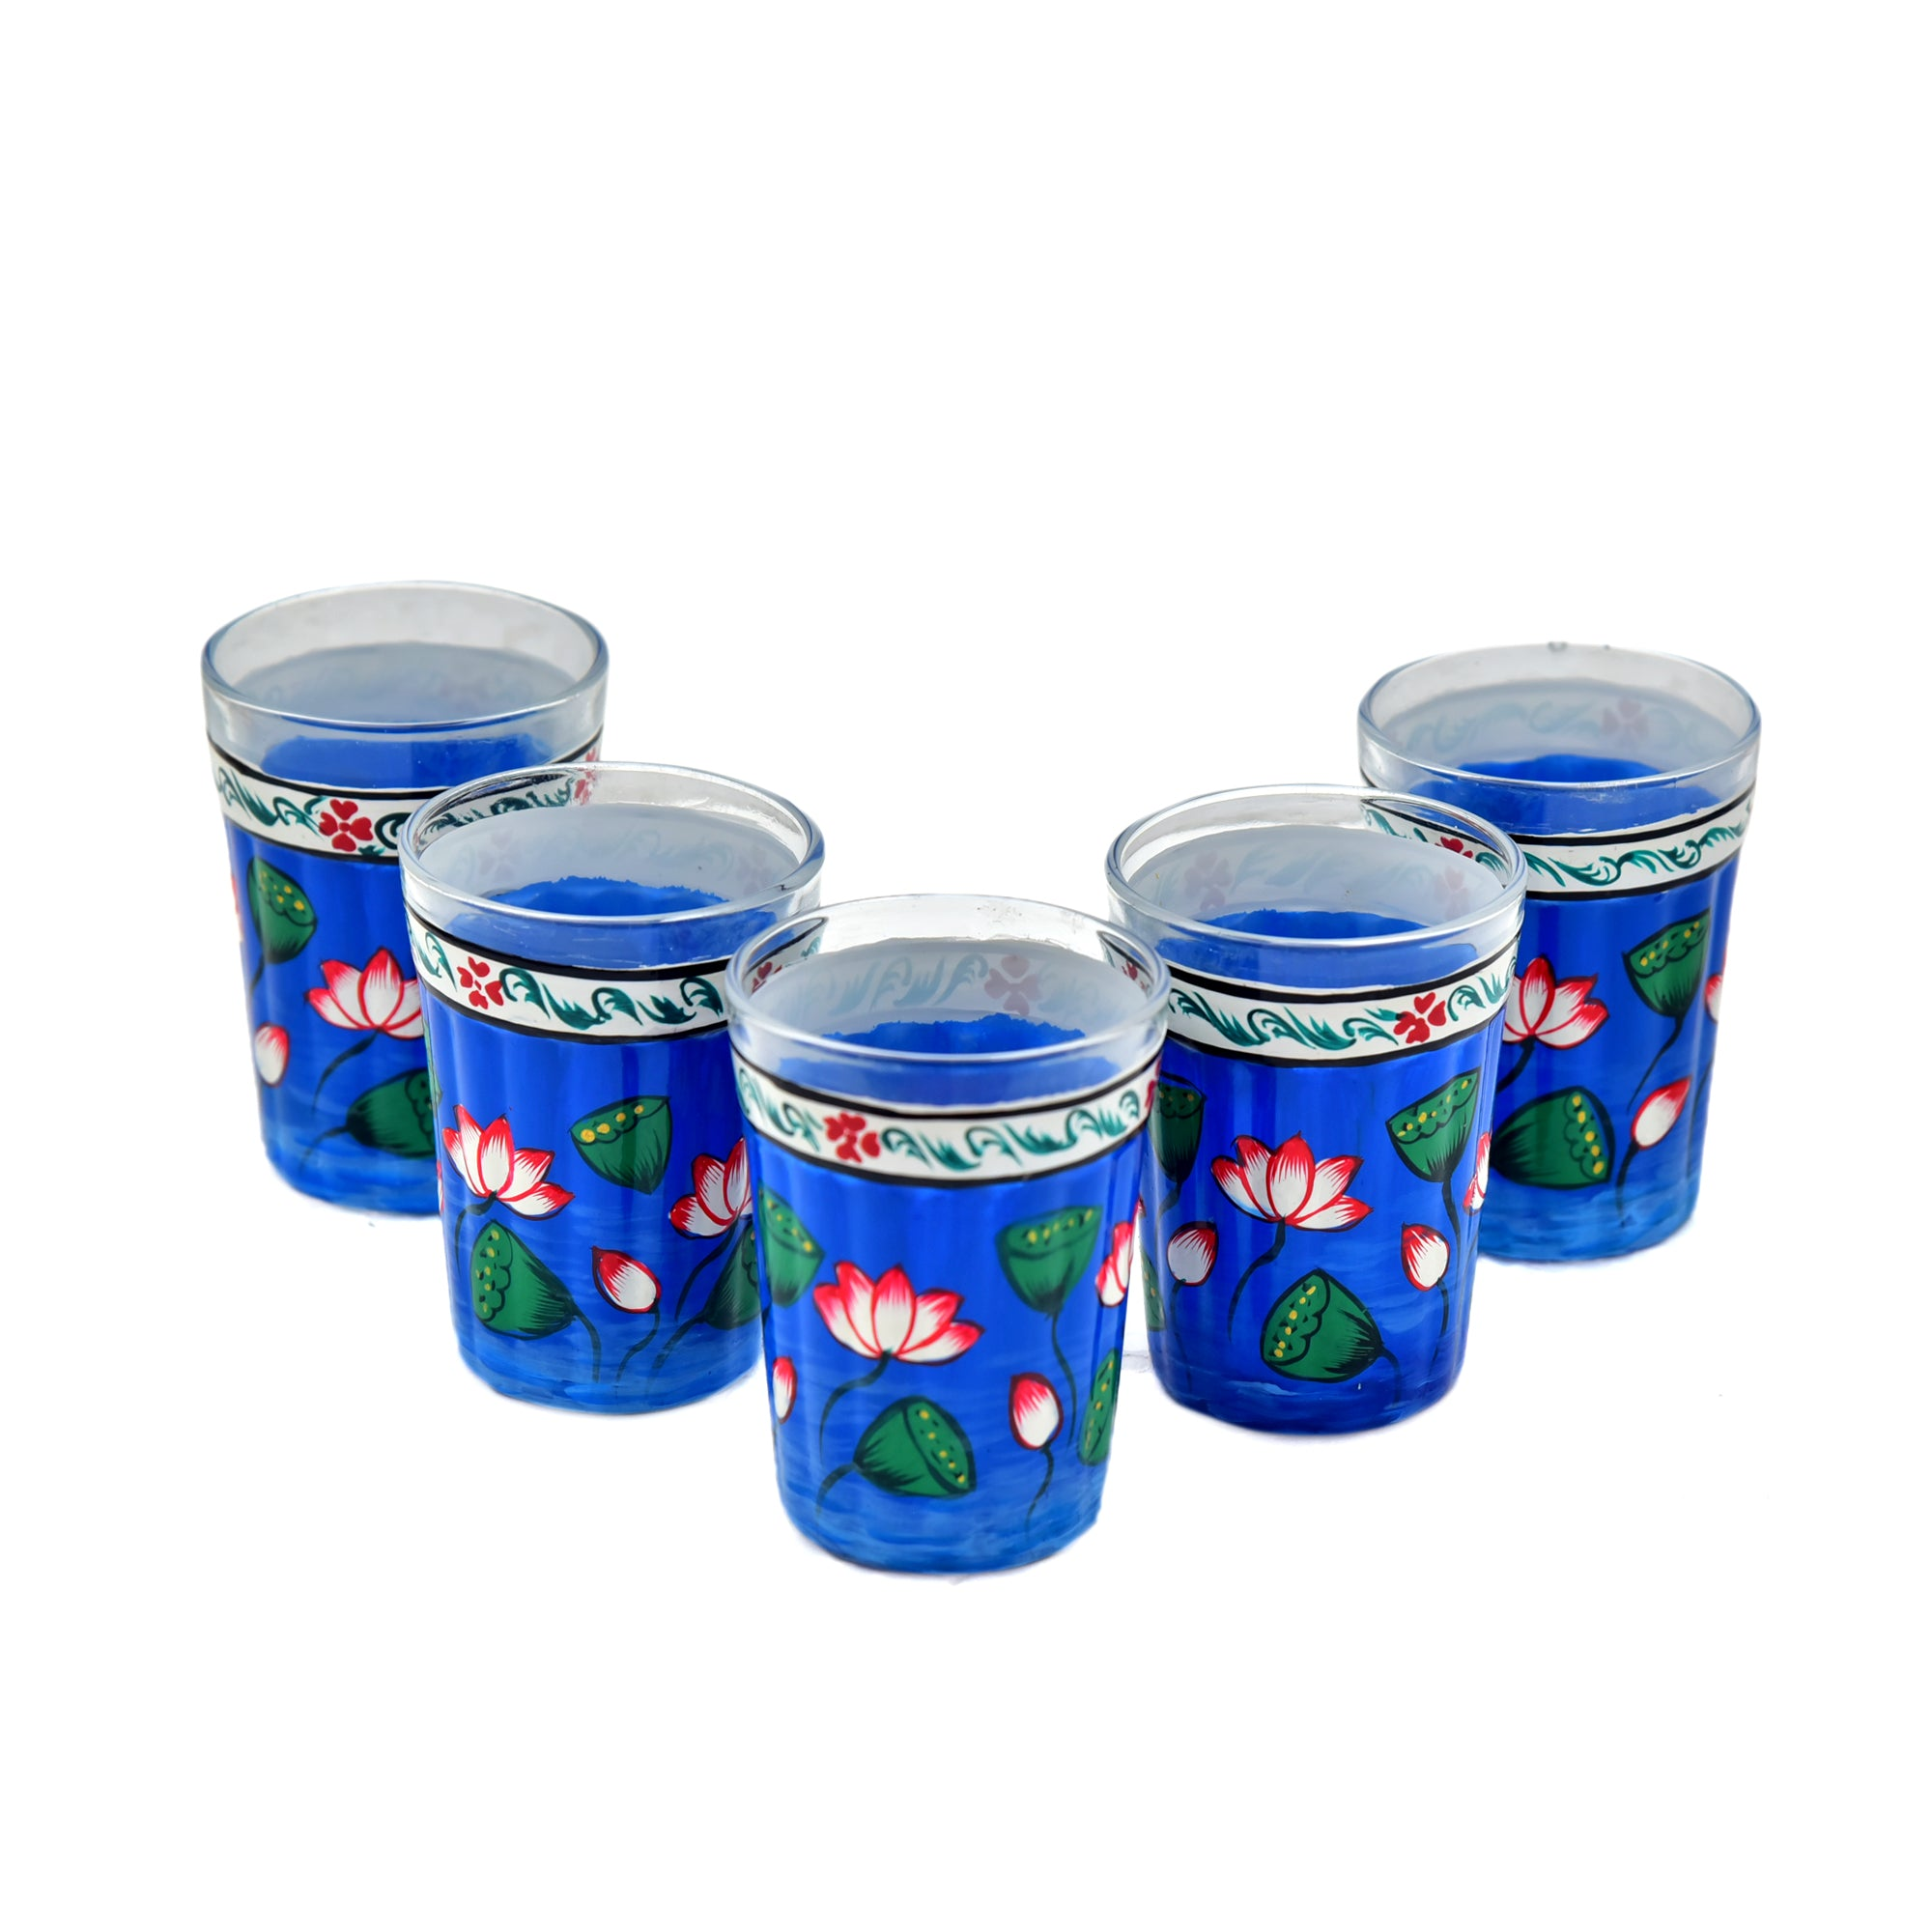 Kaushalam Tea Glass set of 6 : Blue Pichwai